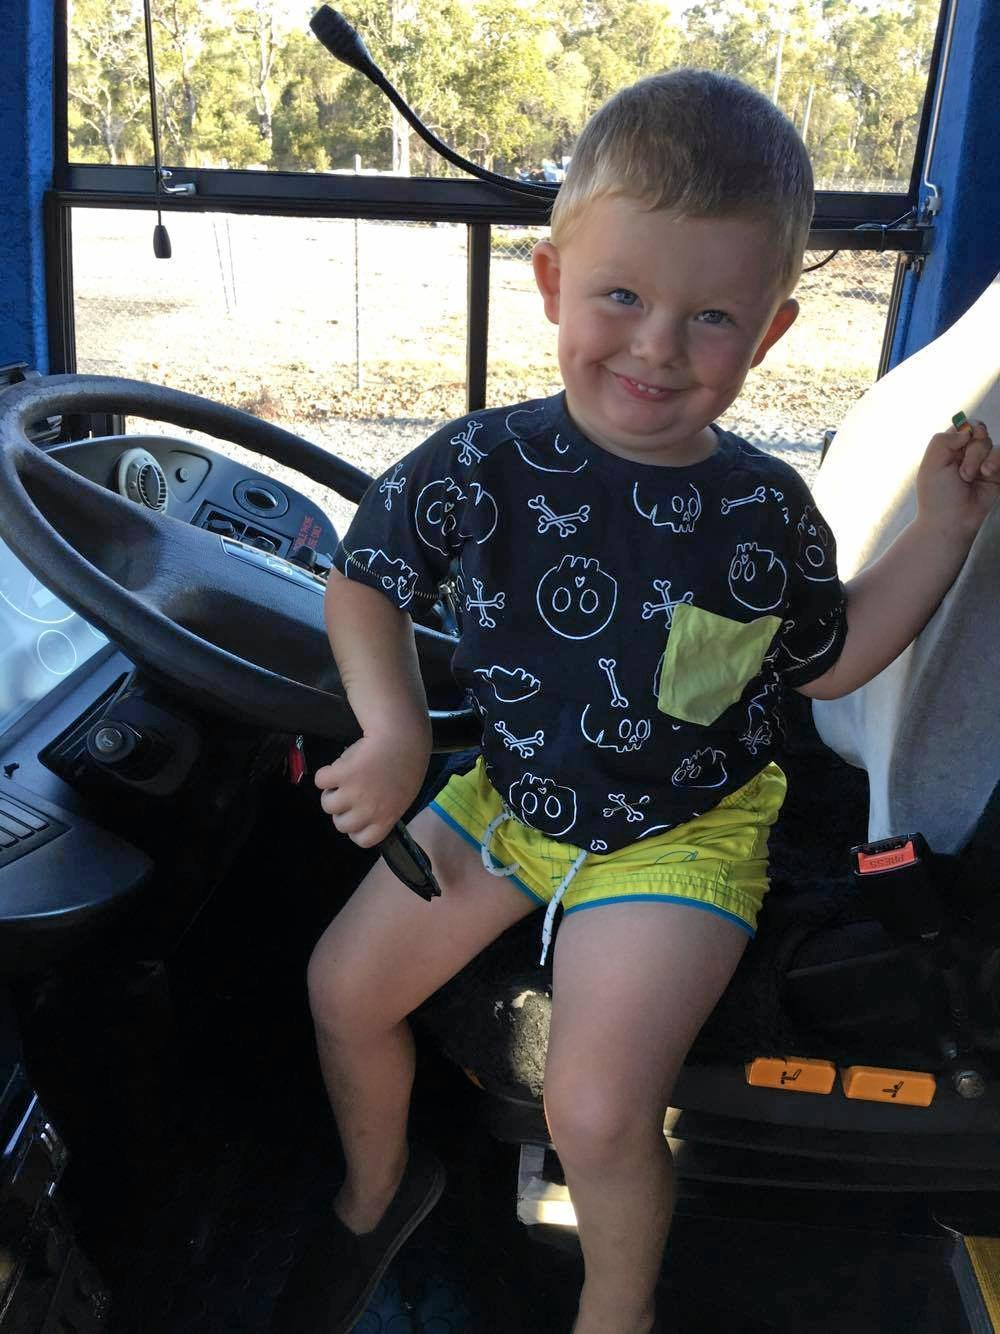 WITHOUT fail two-year-old Tyler McGibbon eagerly sits and waits for the school bus to pass morning and afternoon. He was excited to meet the driver who took the time to toot on a daily basis.